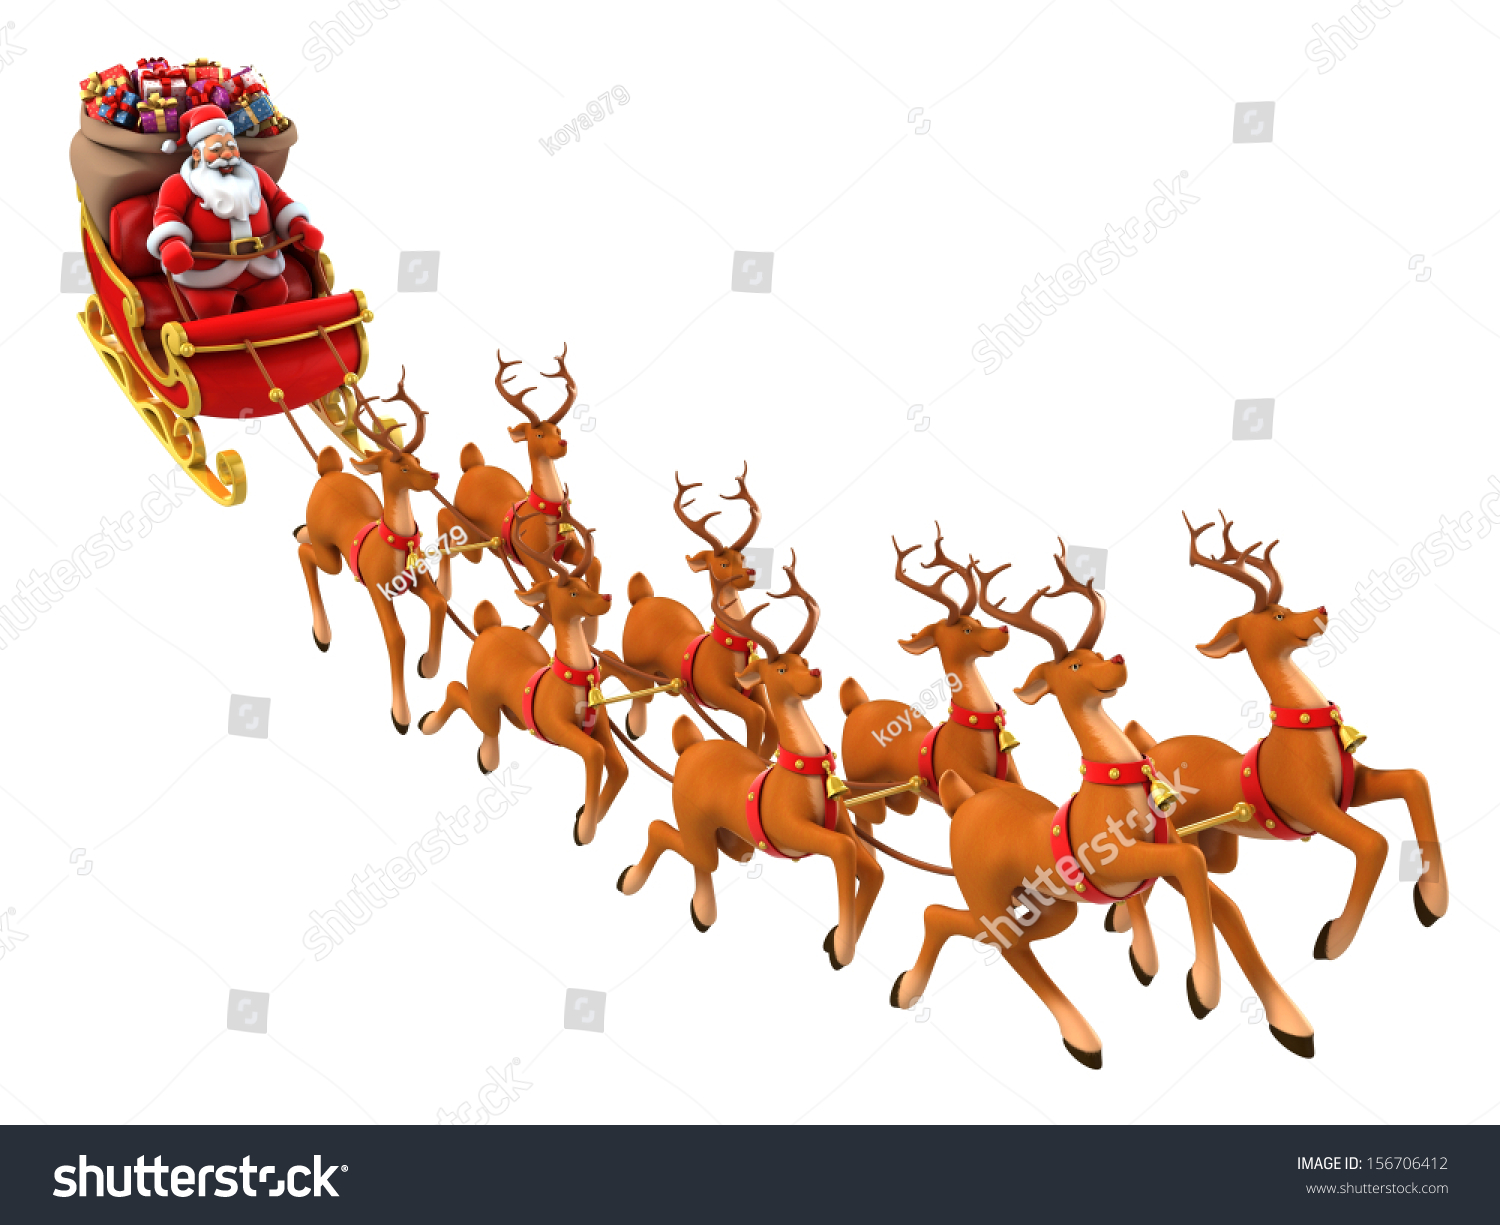 Santa claus rides reindeer sleigh on stock illustration